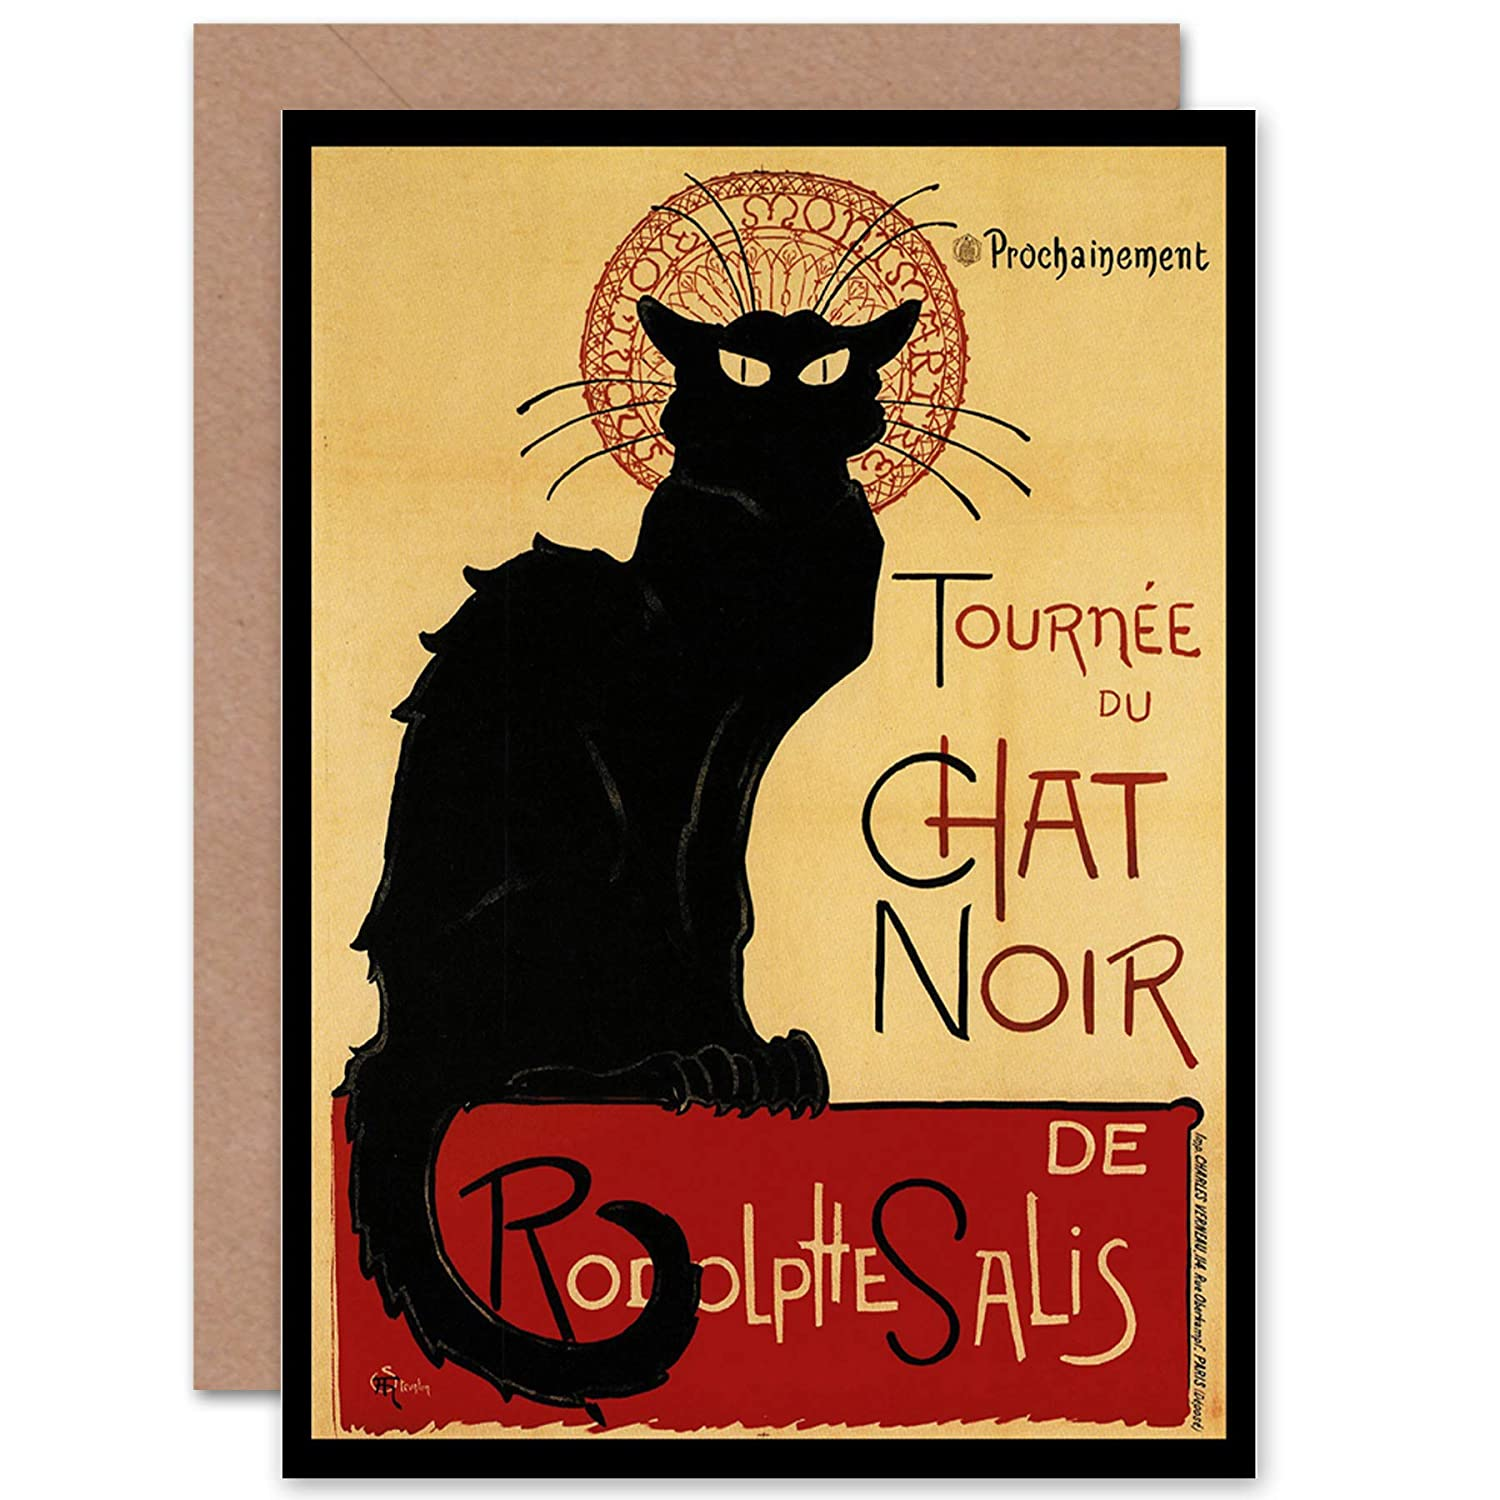 BLACK CAT CHAT NOIR RODOLPHE PARIS FRANCE BIRTHDAY BLANK GREETINGS CARD CP1057 Wee Blue Coo LTD